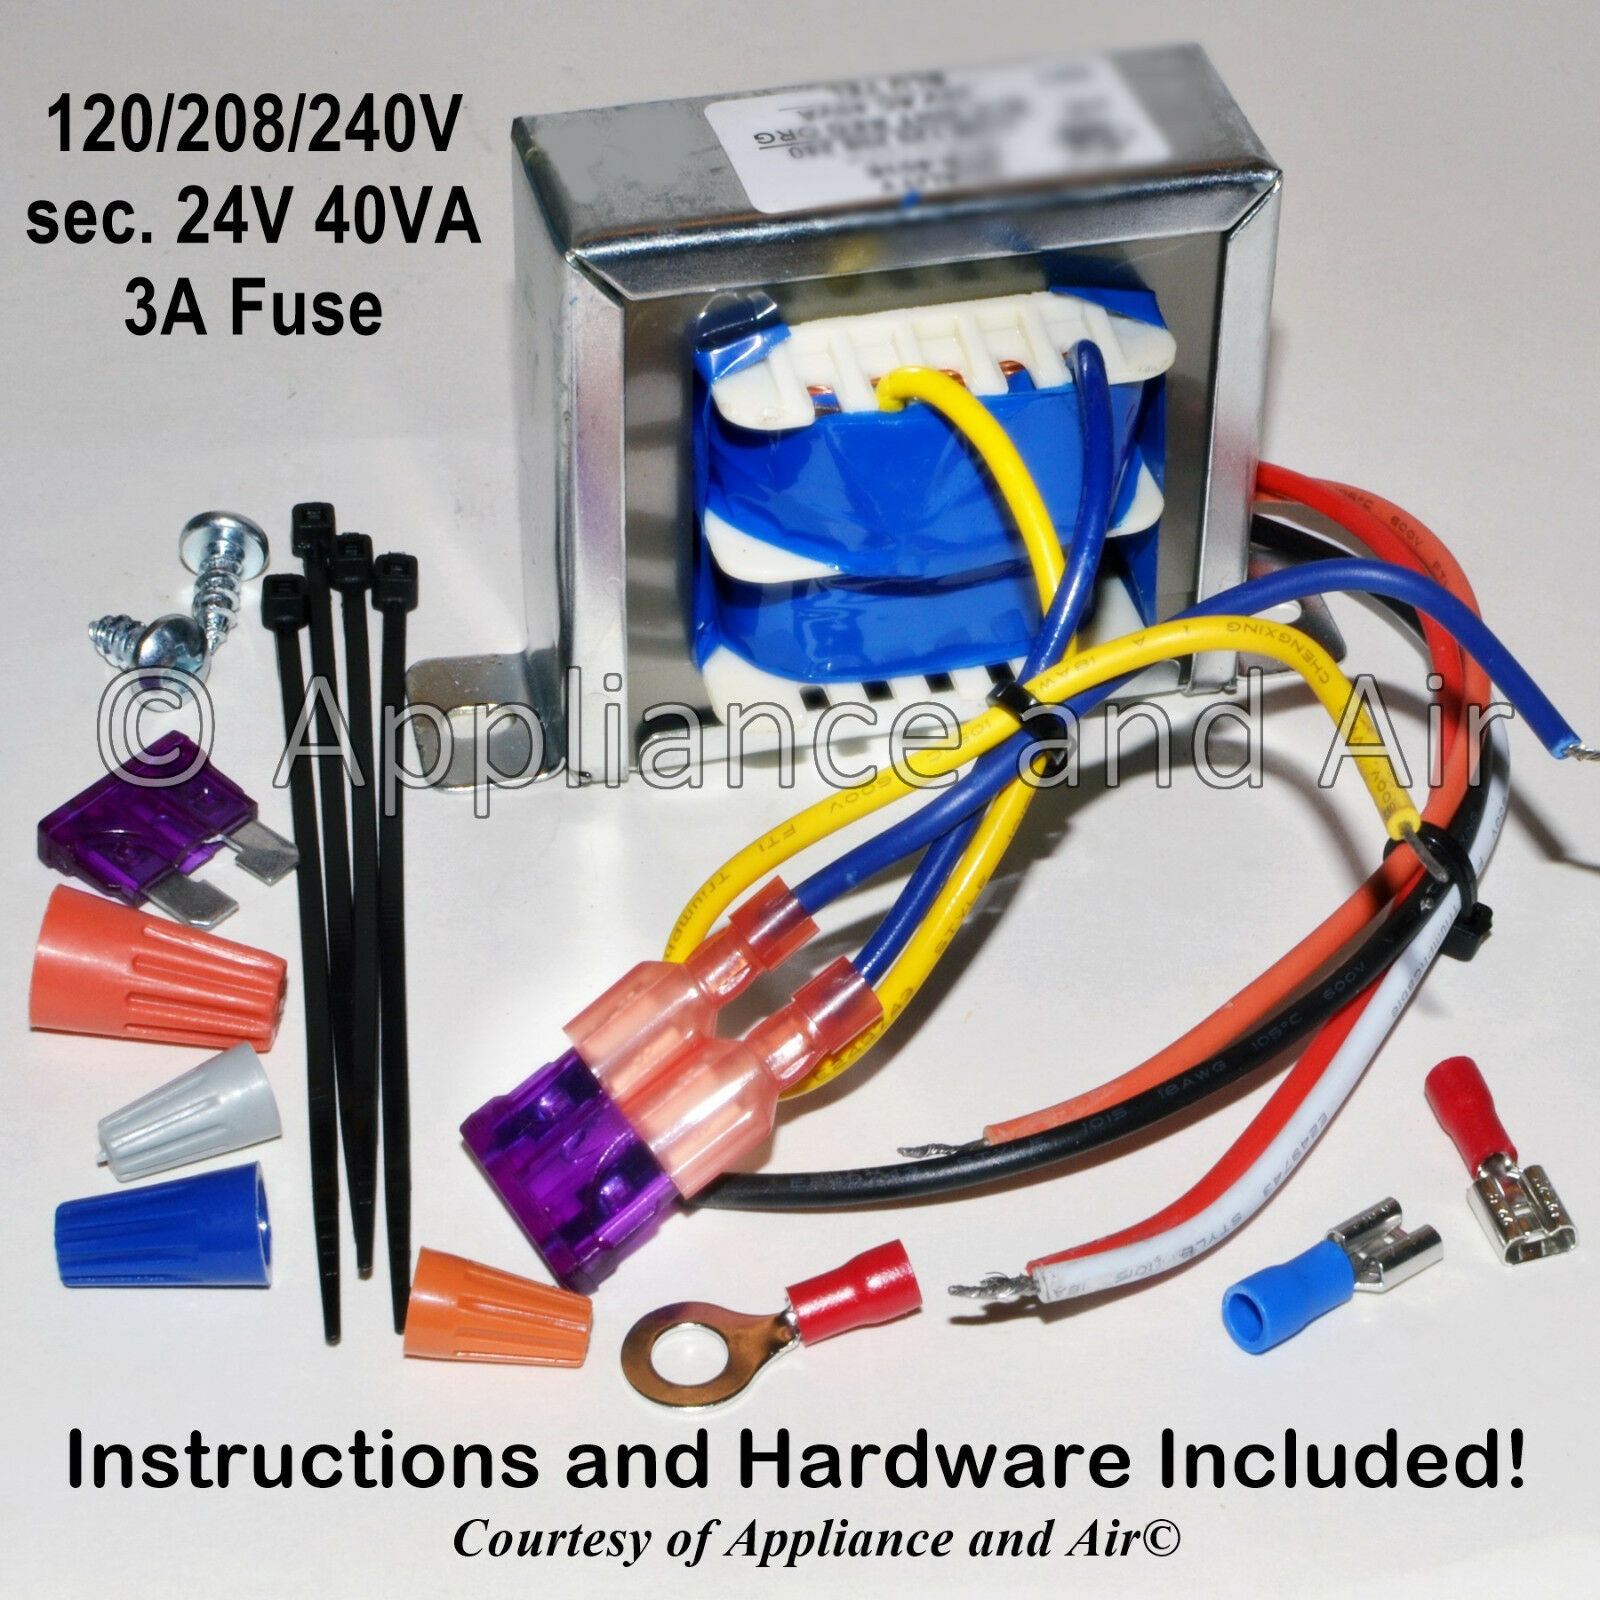 [ZSVE_7041]  2 2 Intertherm/Miller Furnace 60 AMP Disconnect Fuse Box 621029 30  electrical breaker box Electrical & Solar Supplies | Intertherm Furnace Disconnect Fuse Box |  | Swiftbridge Capital